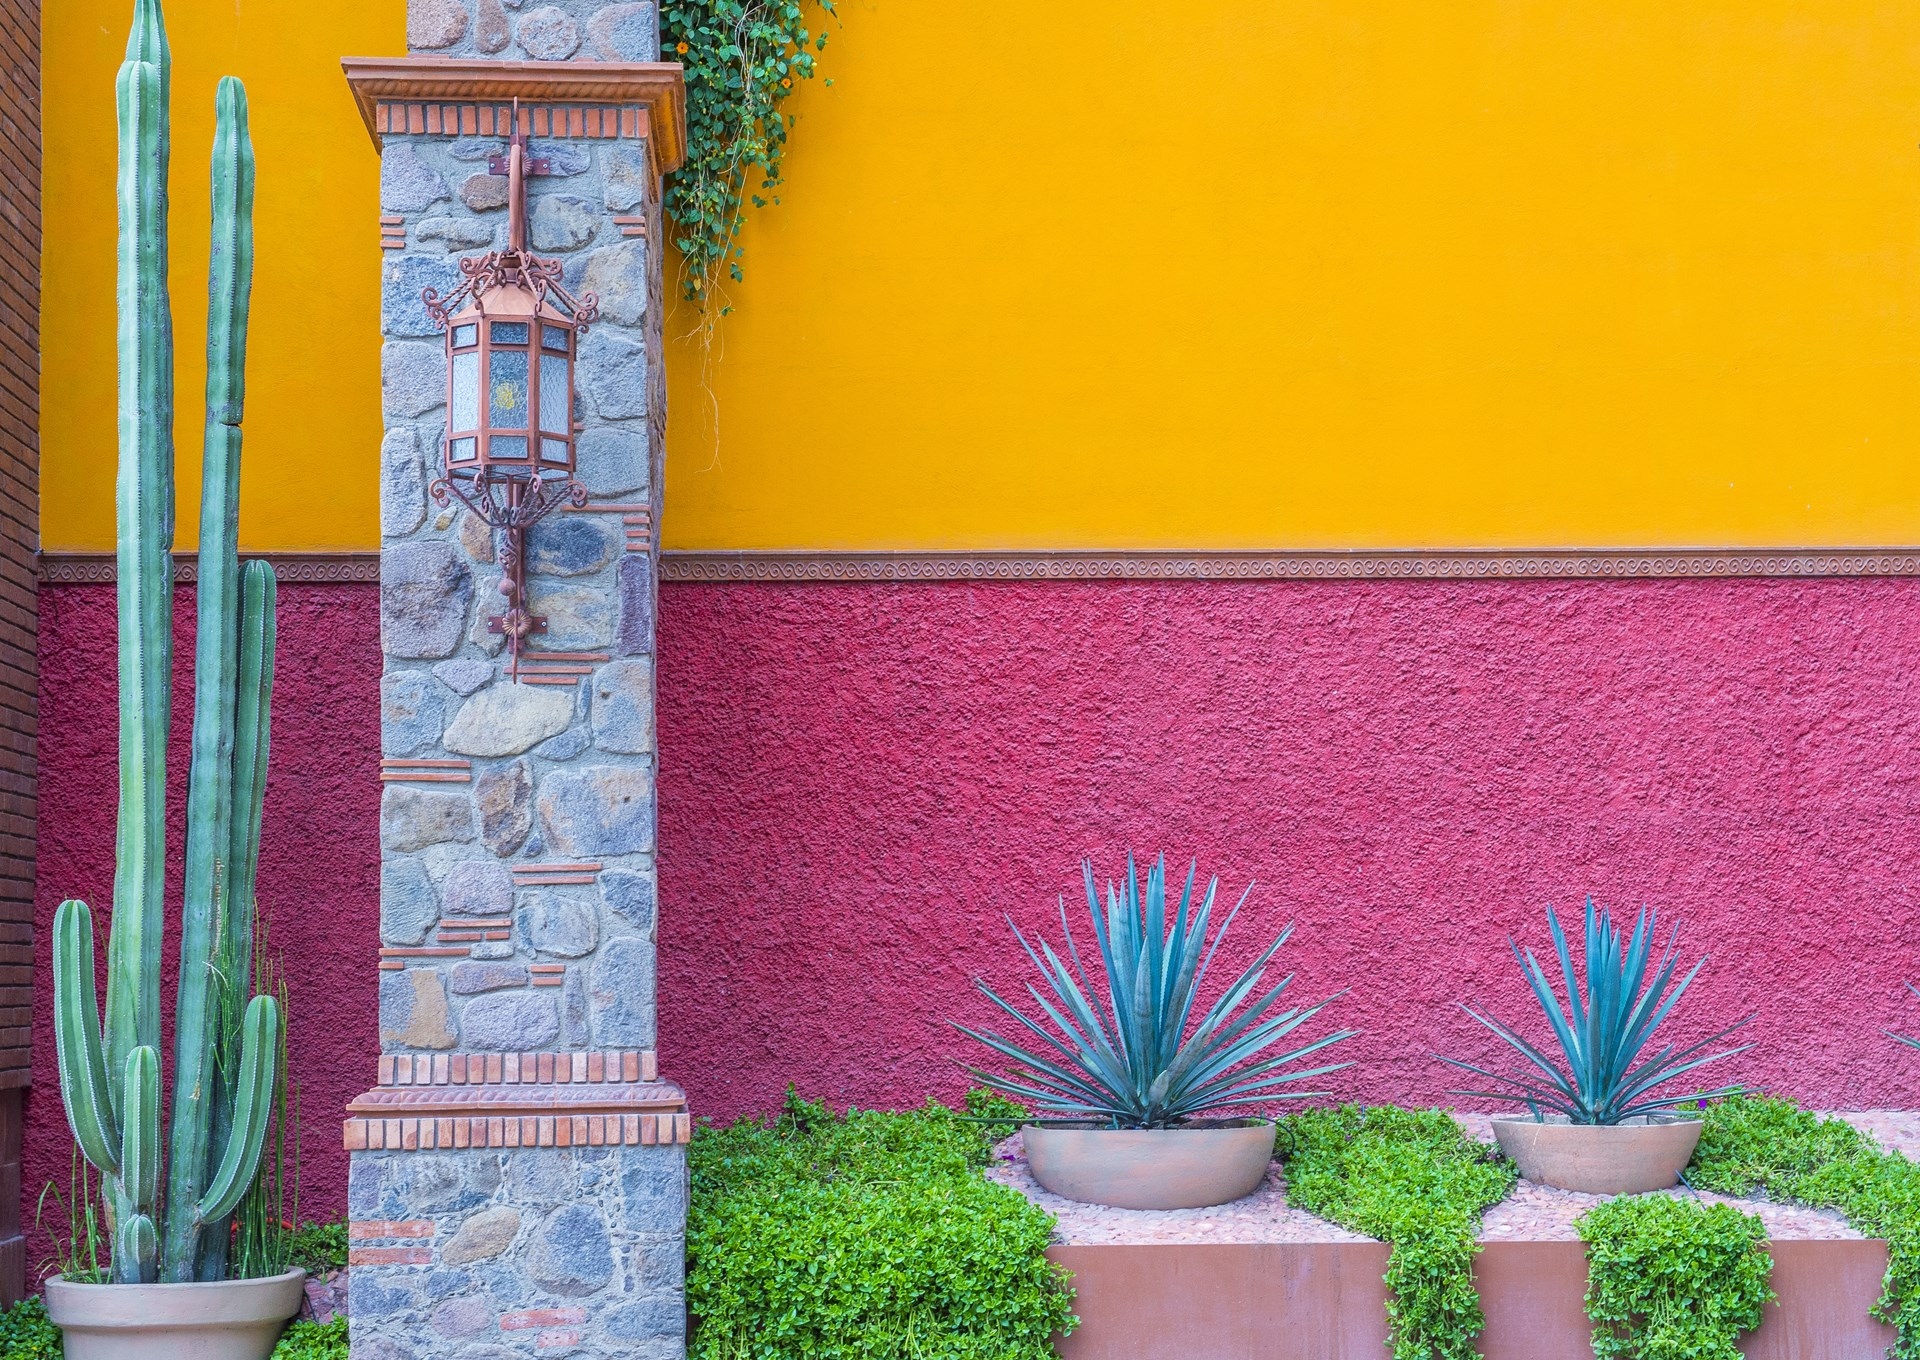 Points of interest in Mexico